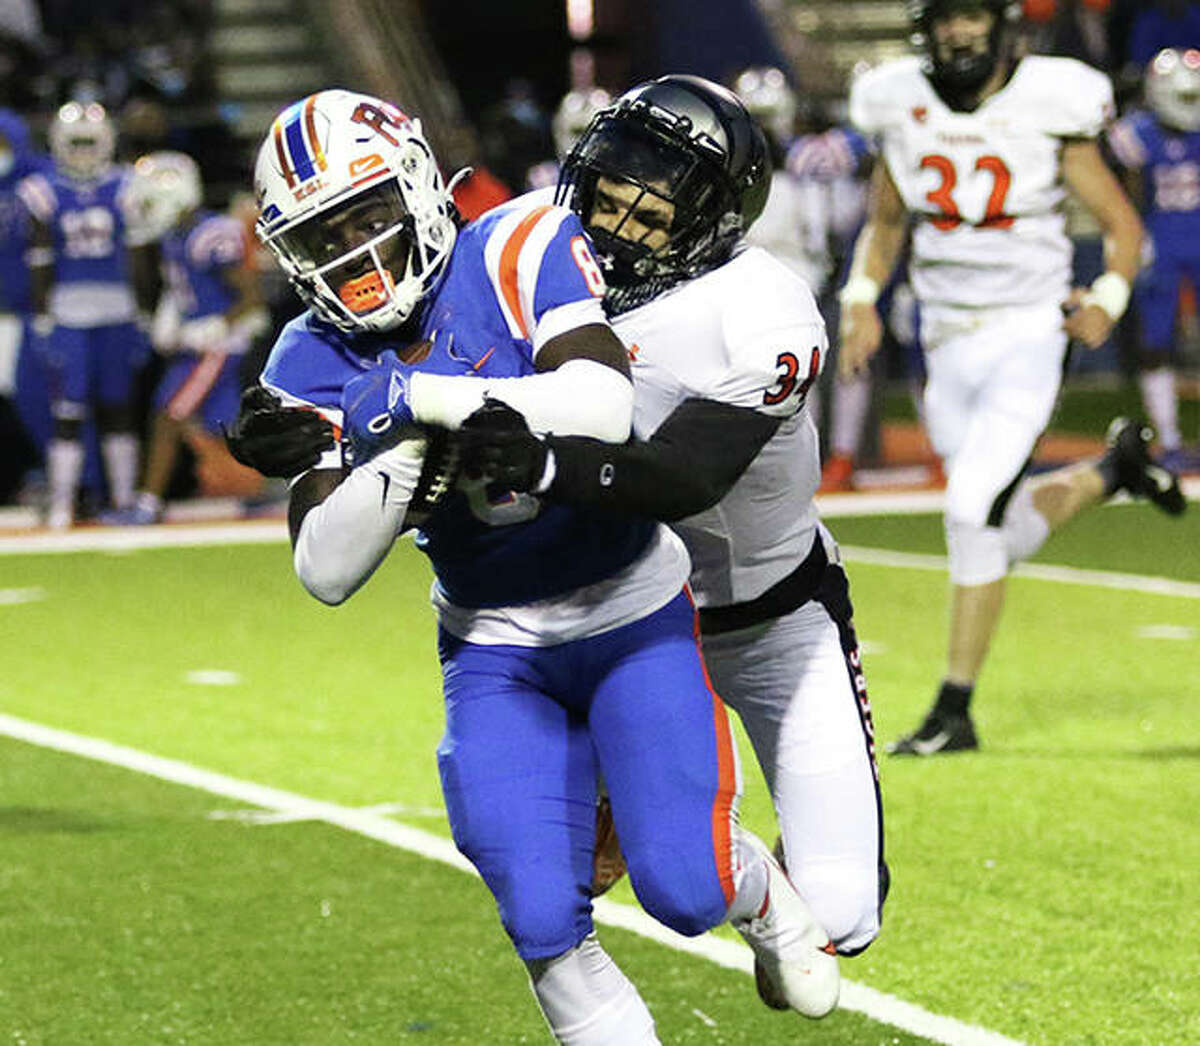 Edwardsville's DeShawn Larson catches East St. Louis' Kenneth Cotton to make a tackle Friday night at Jordan Stadium in East St. Louis.